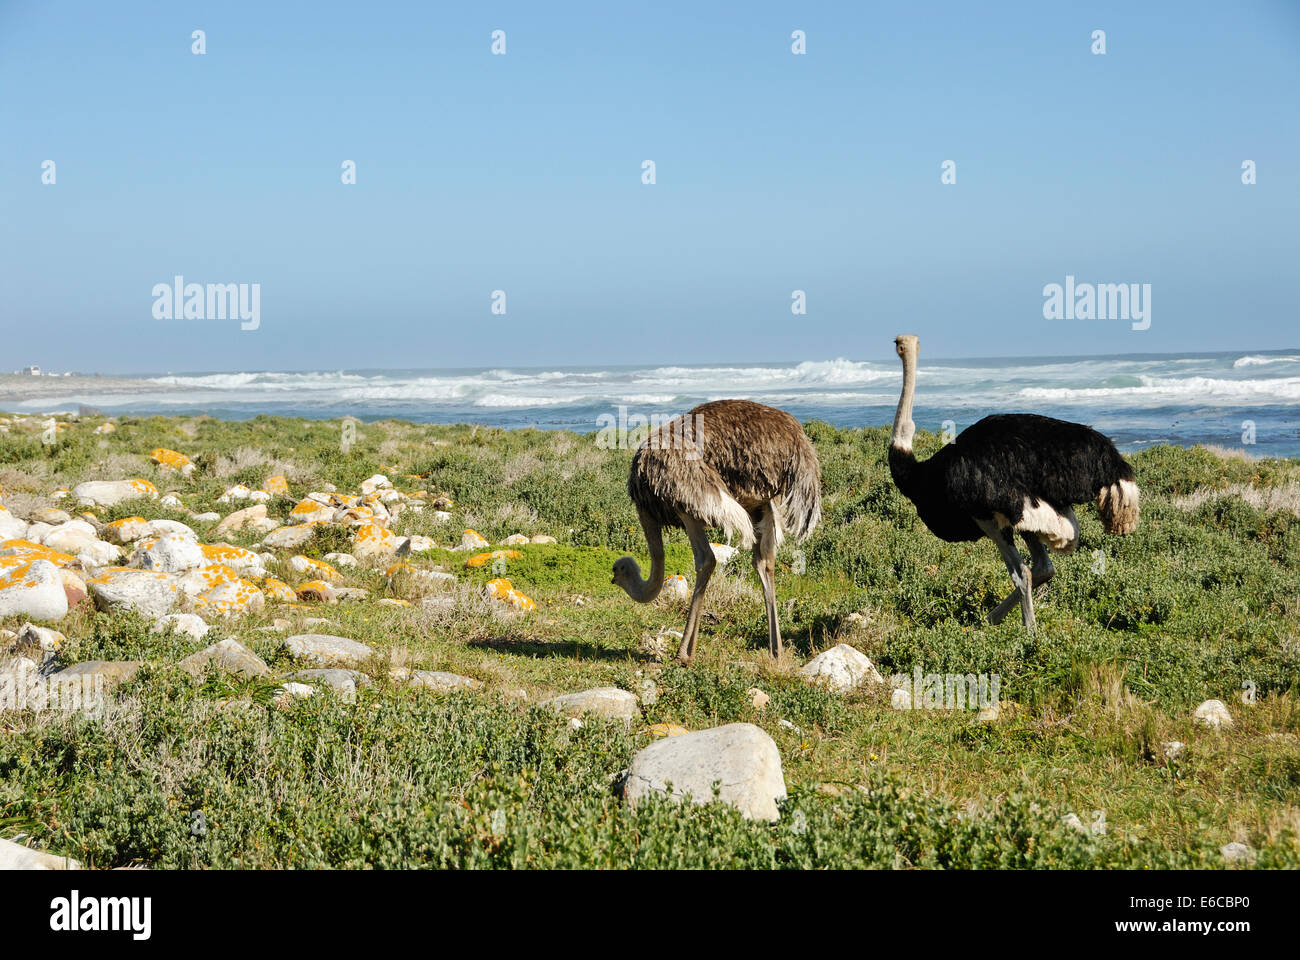 African Ostriches (Struthio camelus) foraging next to beach near Cape of Good Hope, Western Cape Province, South - Stock Image